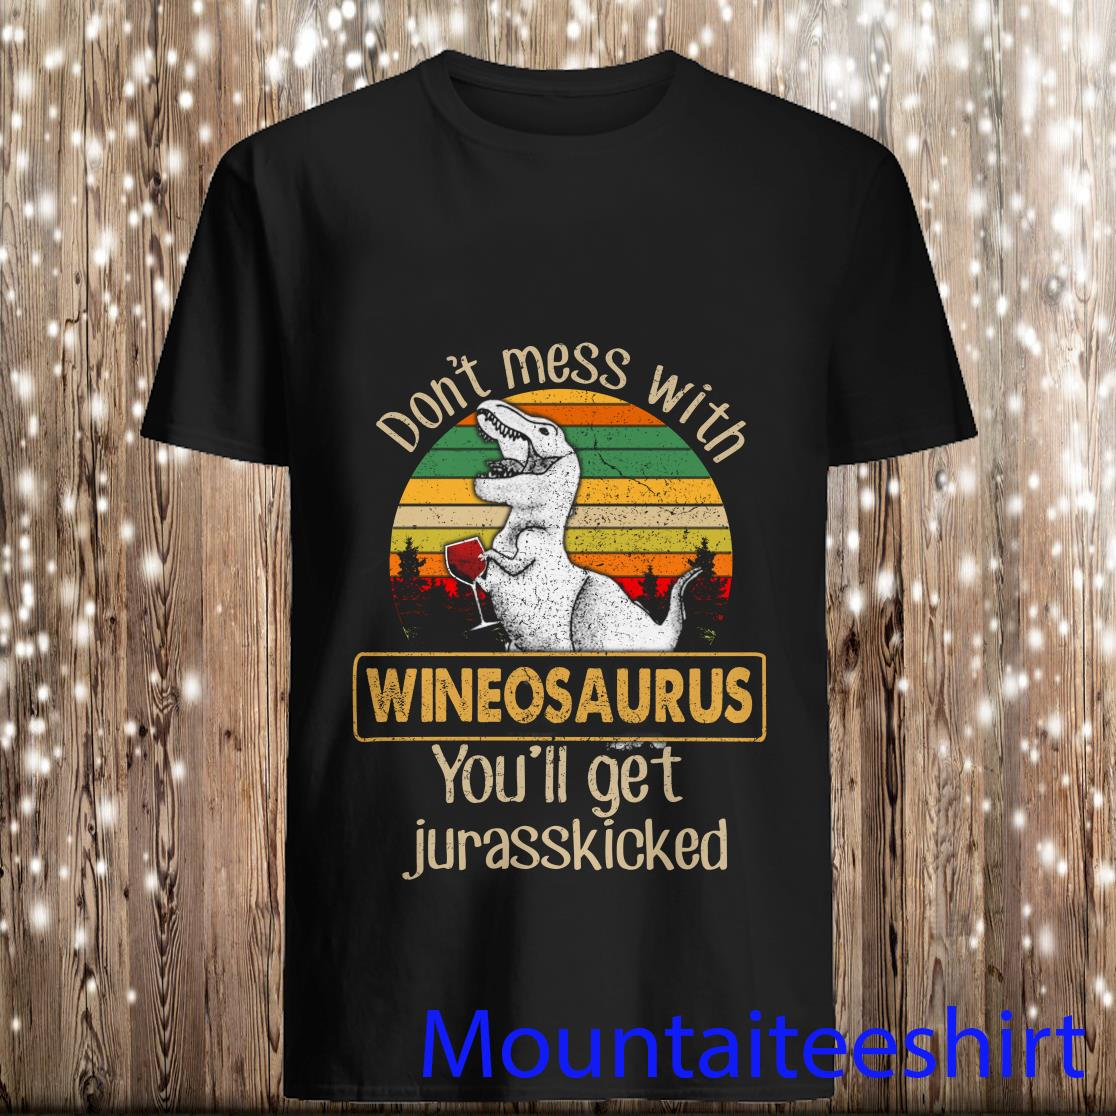 Don_t mess With Winosaurus You_ll Get Jurasskicked Vintage Shirt